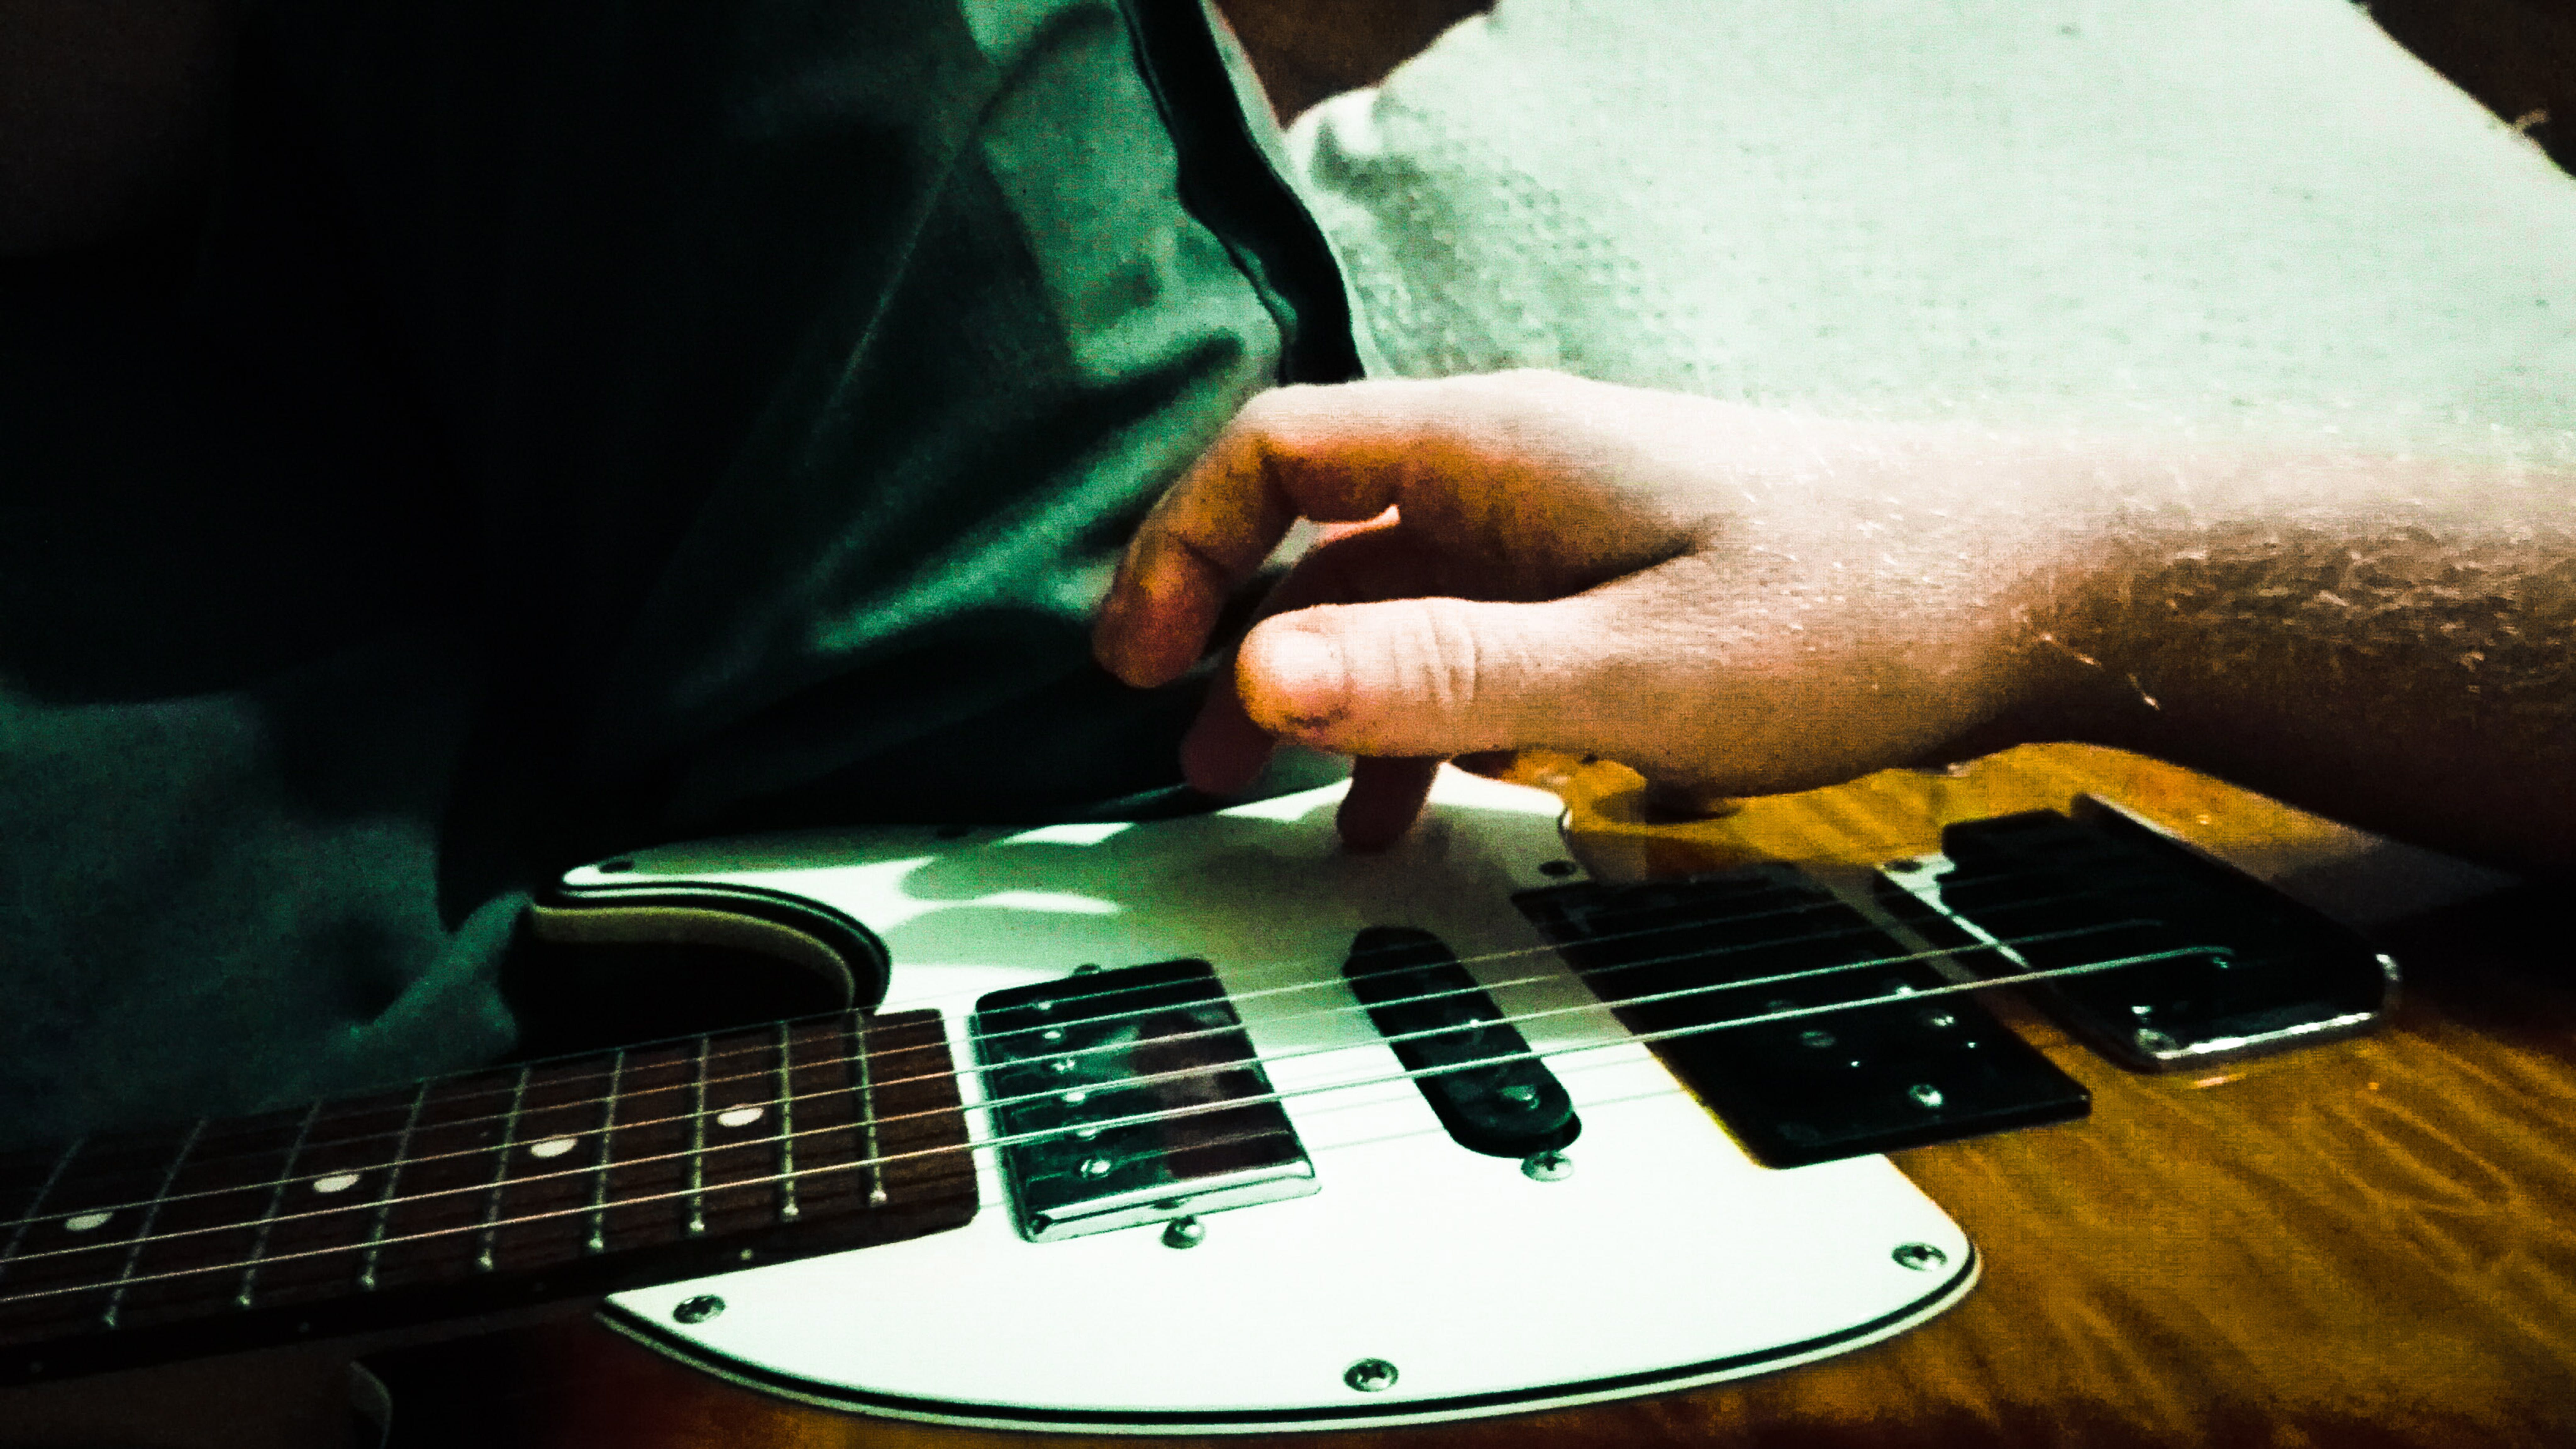 Free stock photo of guitar, learning, music, playing